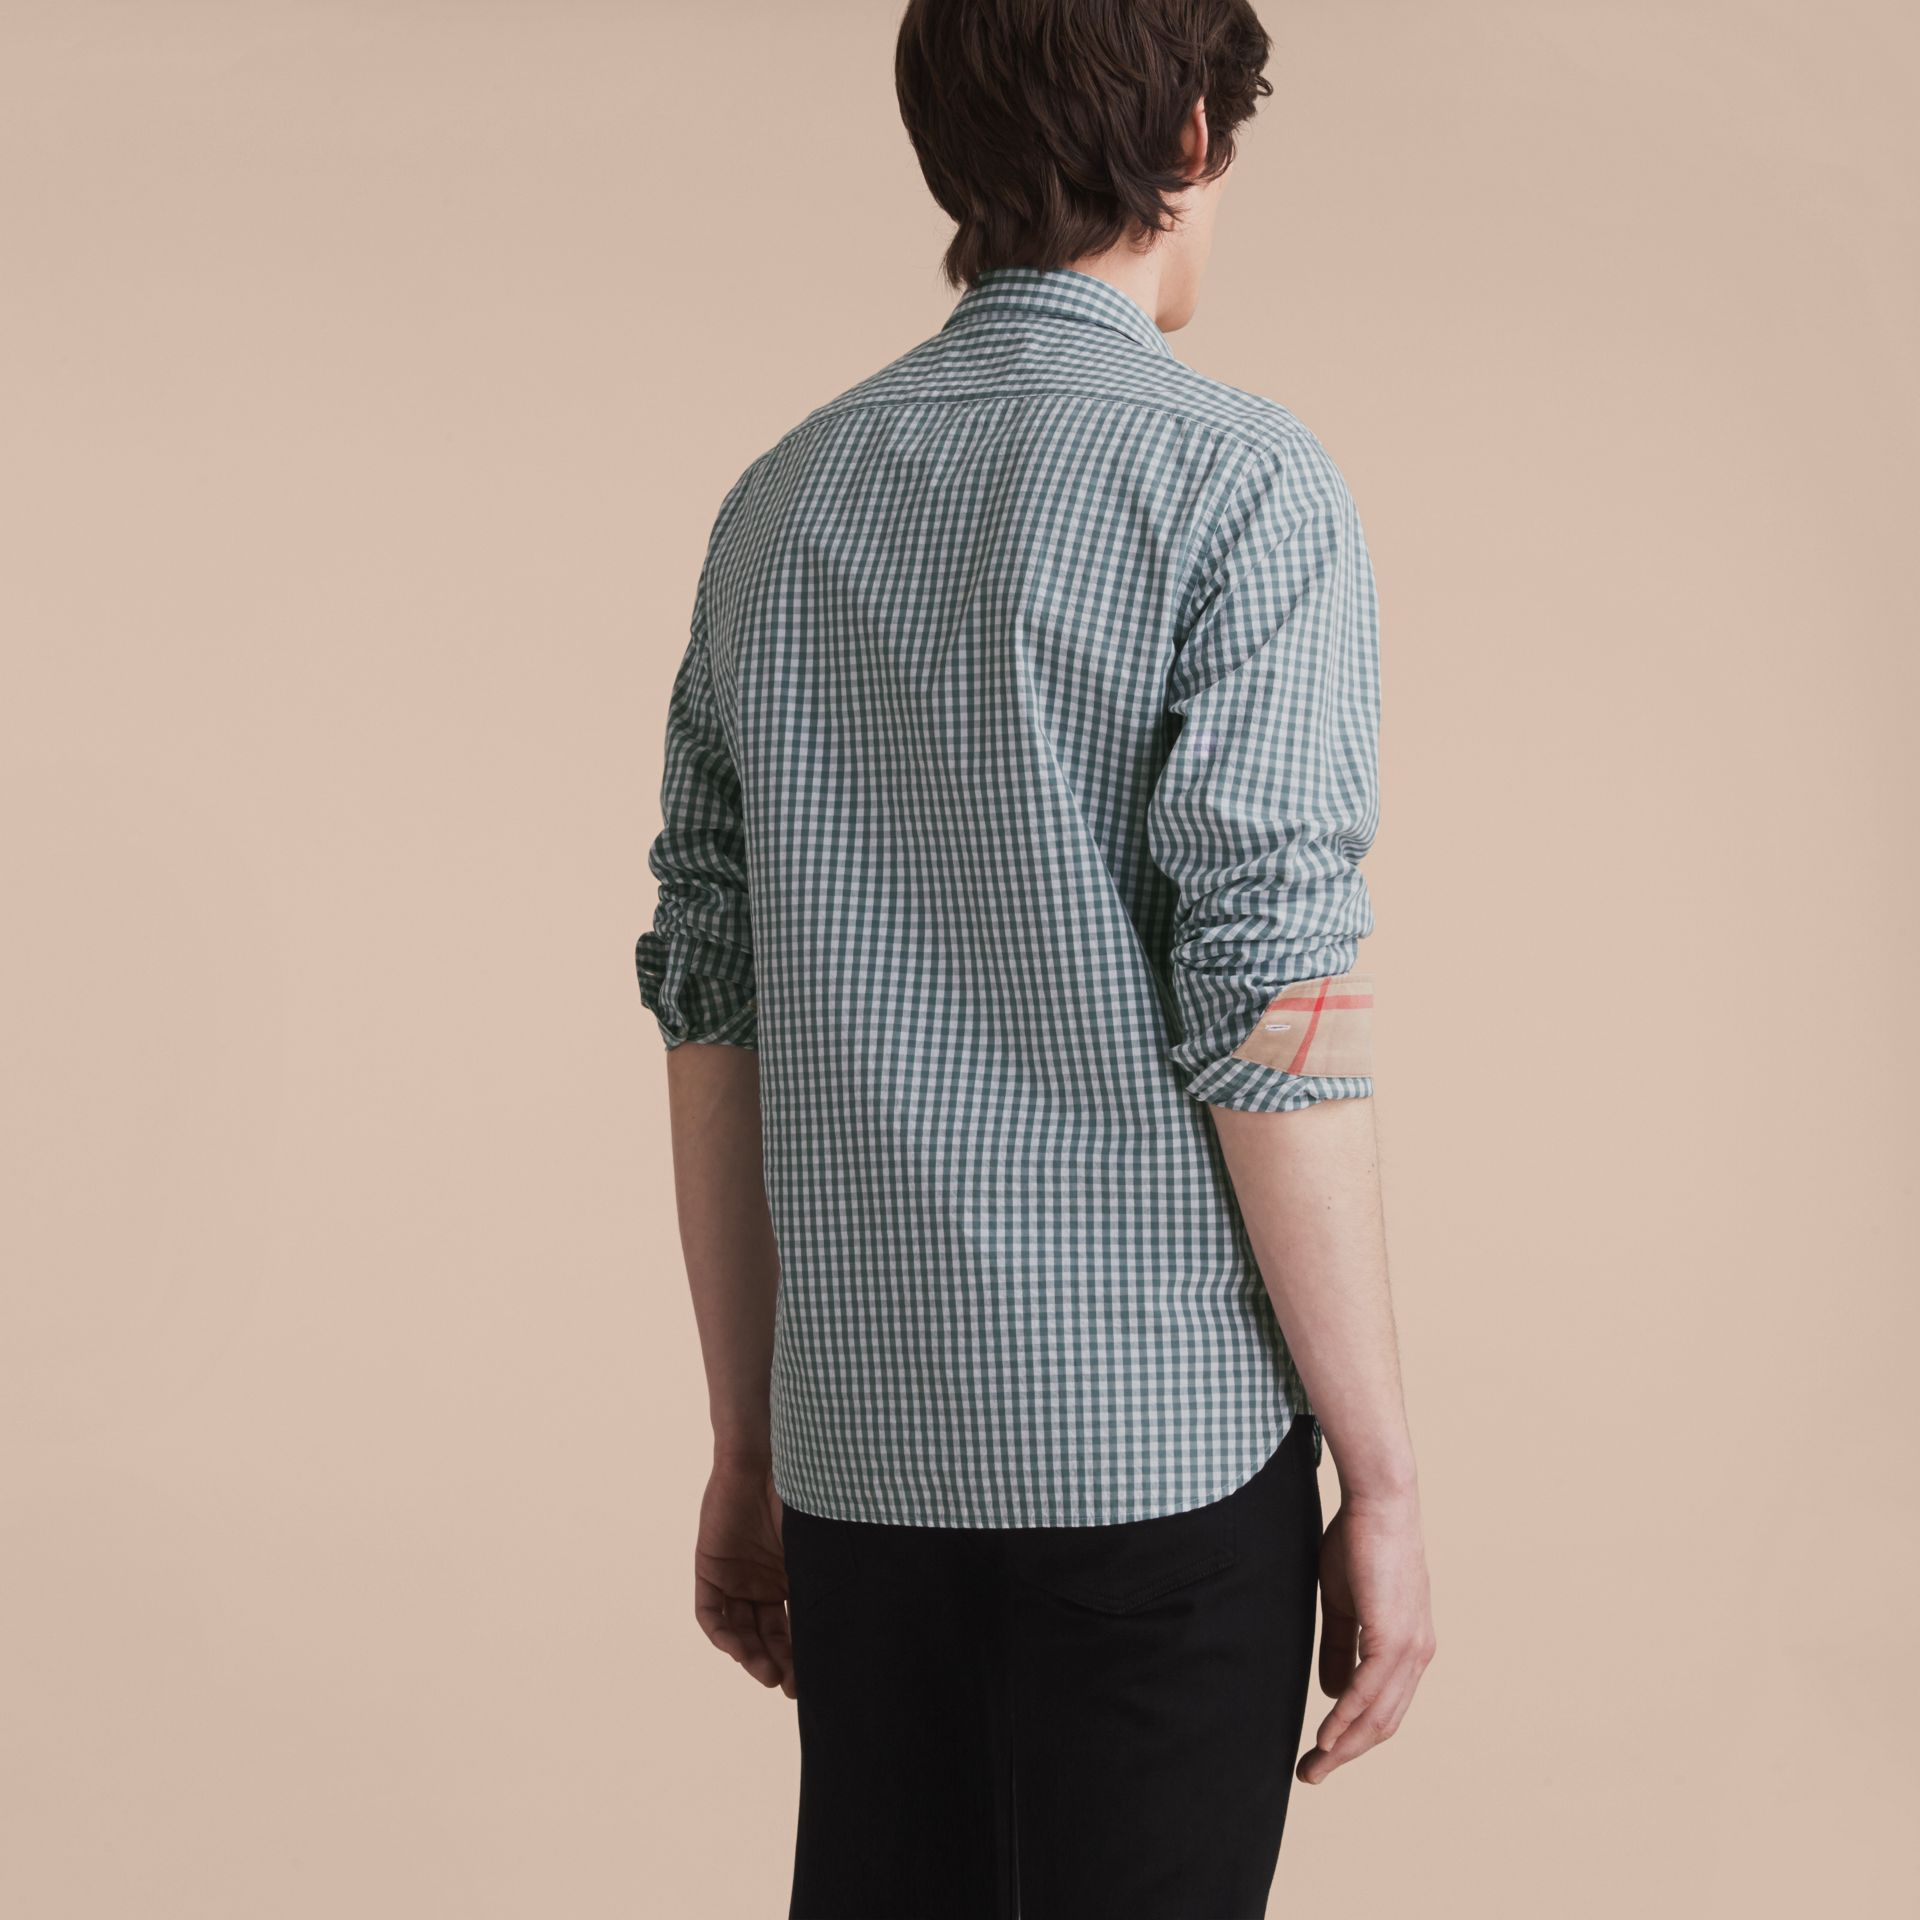 Gingham Cotton Poplin Shirt with Check Detail in Dusty Teal Blue - Men | Burberry - gallery image 3